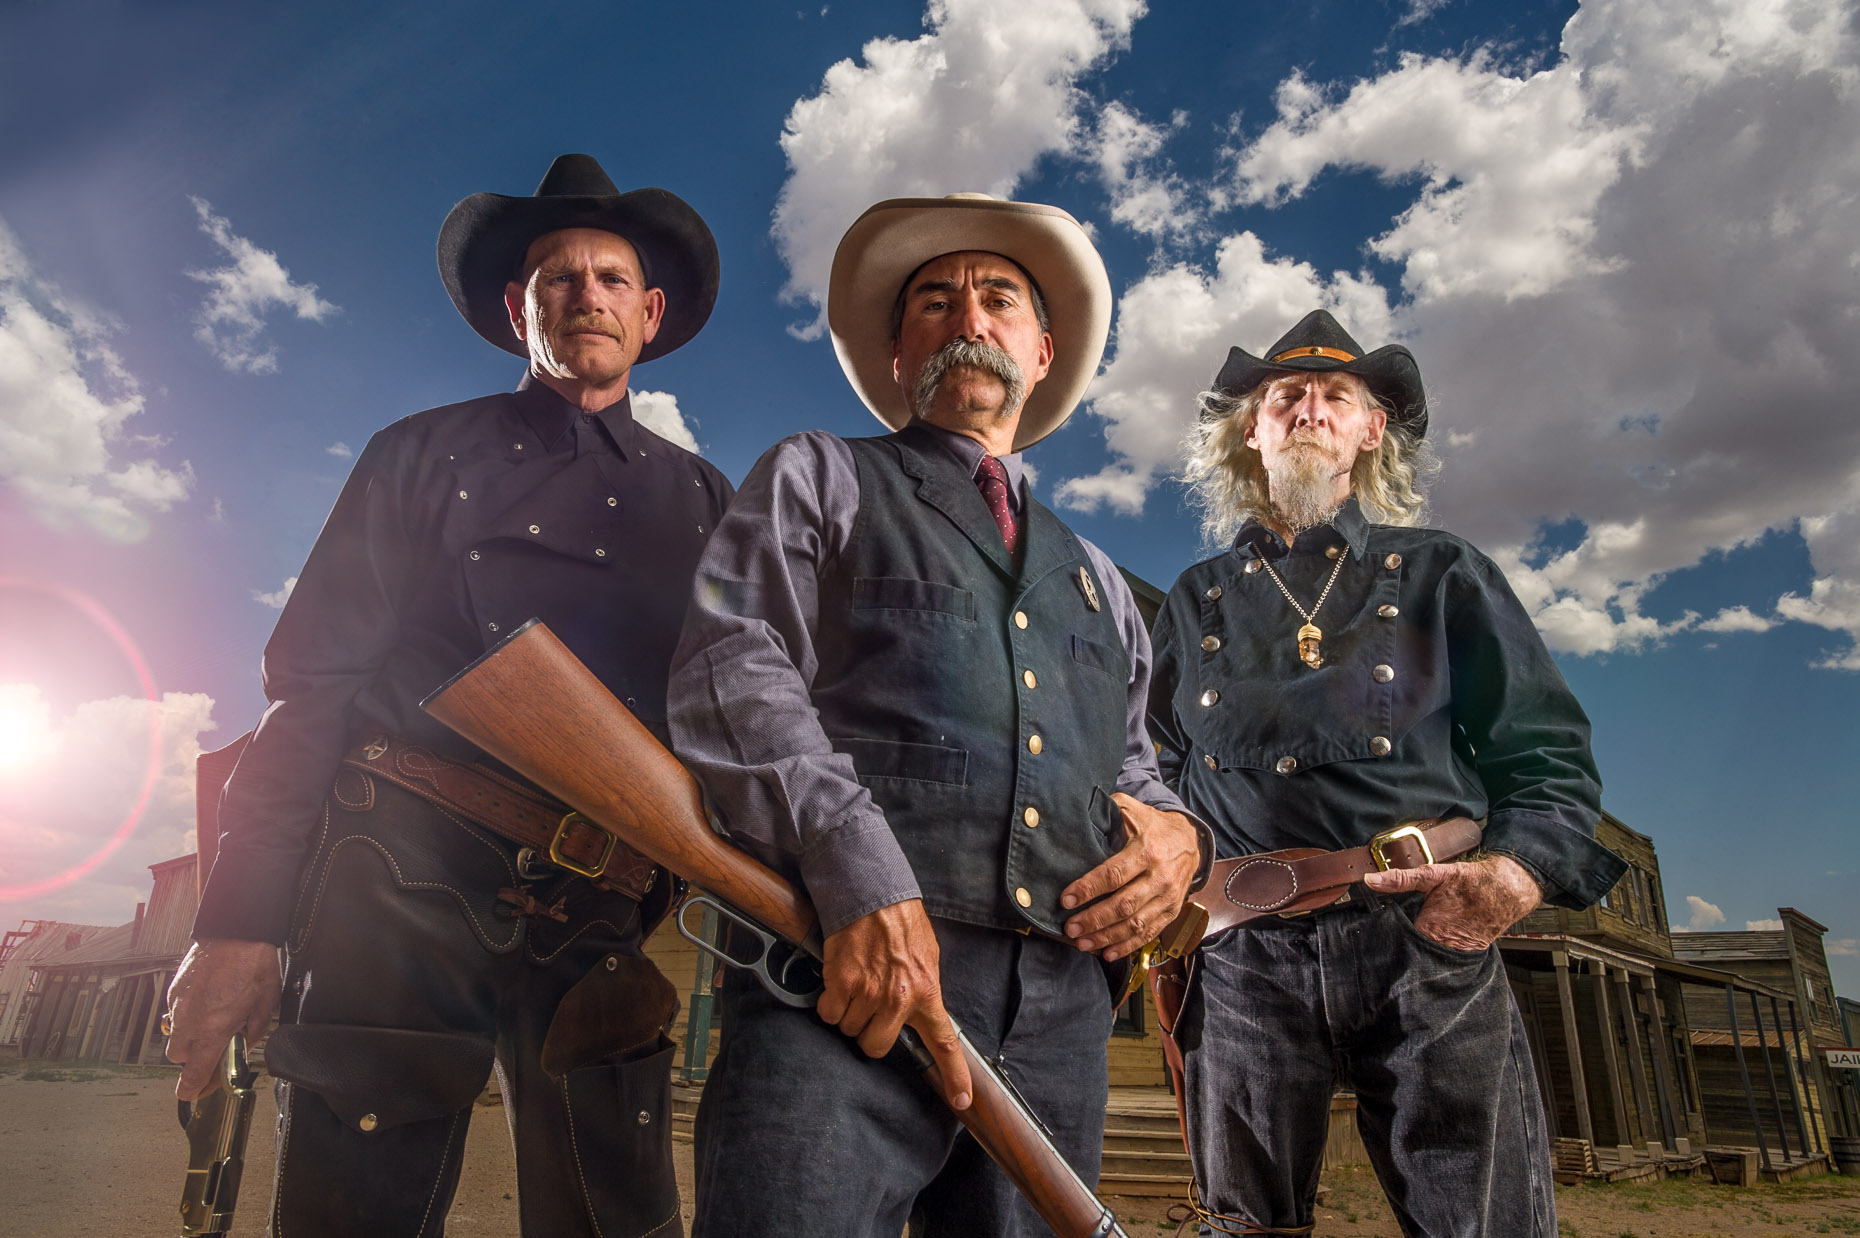 Dramatic portrait of three tough cowboys